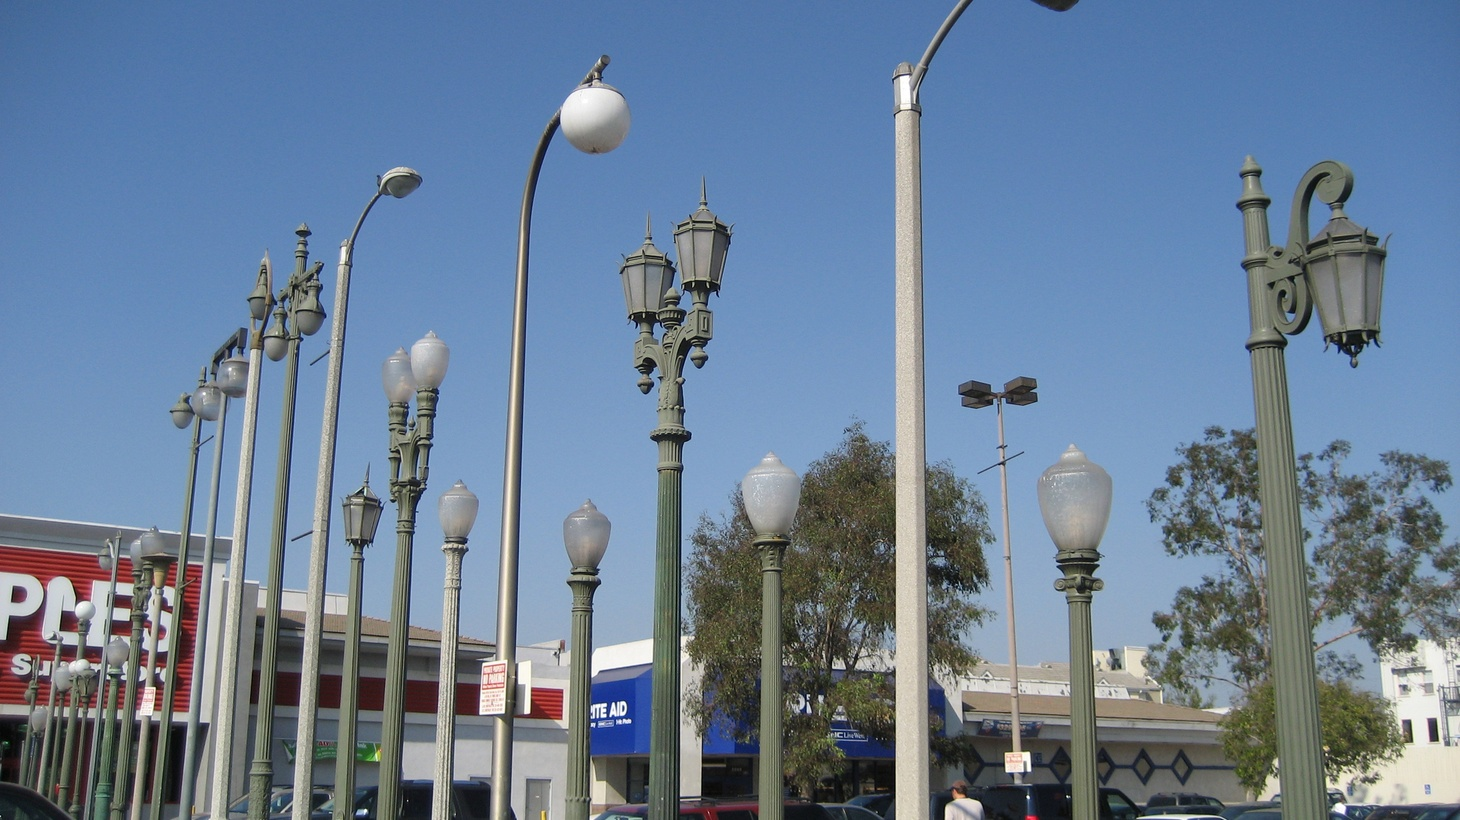 """The sculptural installation Vermonica is an """"urban candelabra"""" of 25 Los Angeles street lamps installed in an East Hollywood parking lot in 1993."""